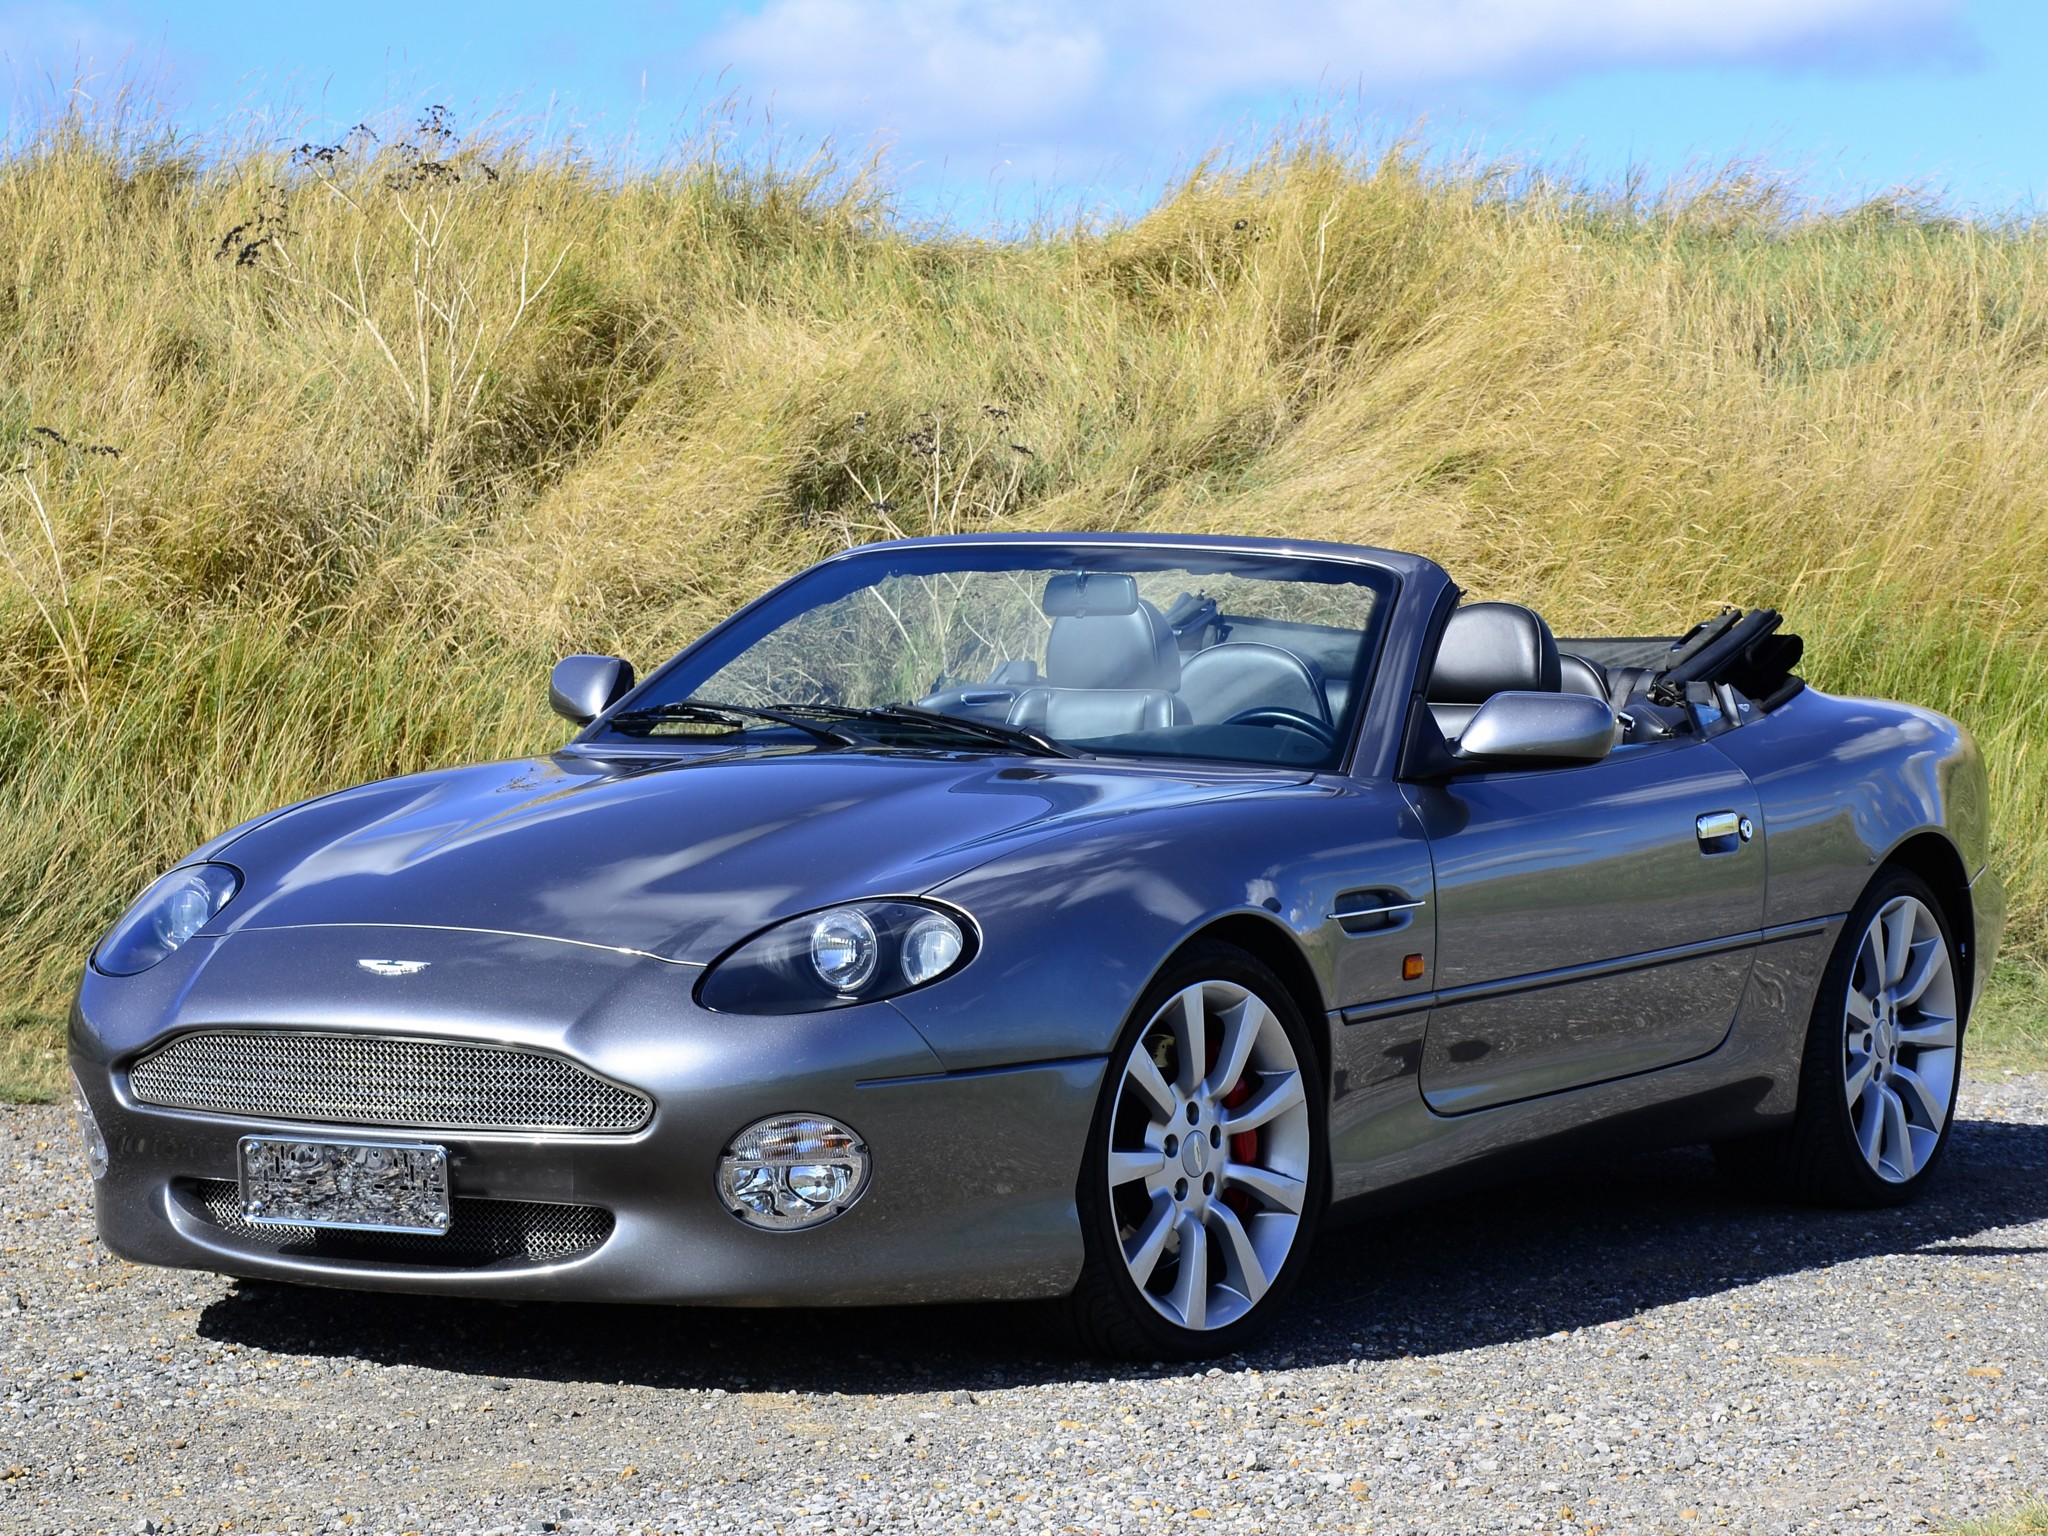 2010 aston martin db7 vantage � pictures information and